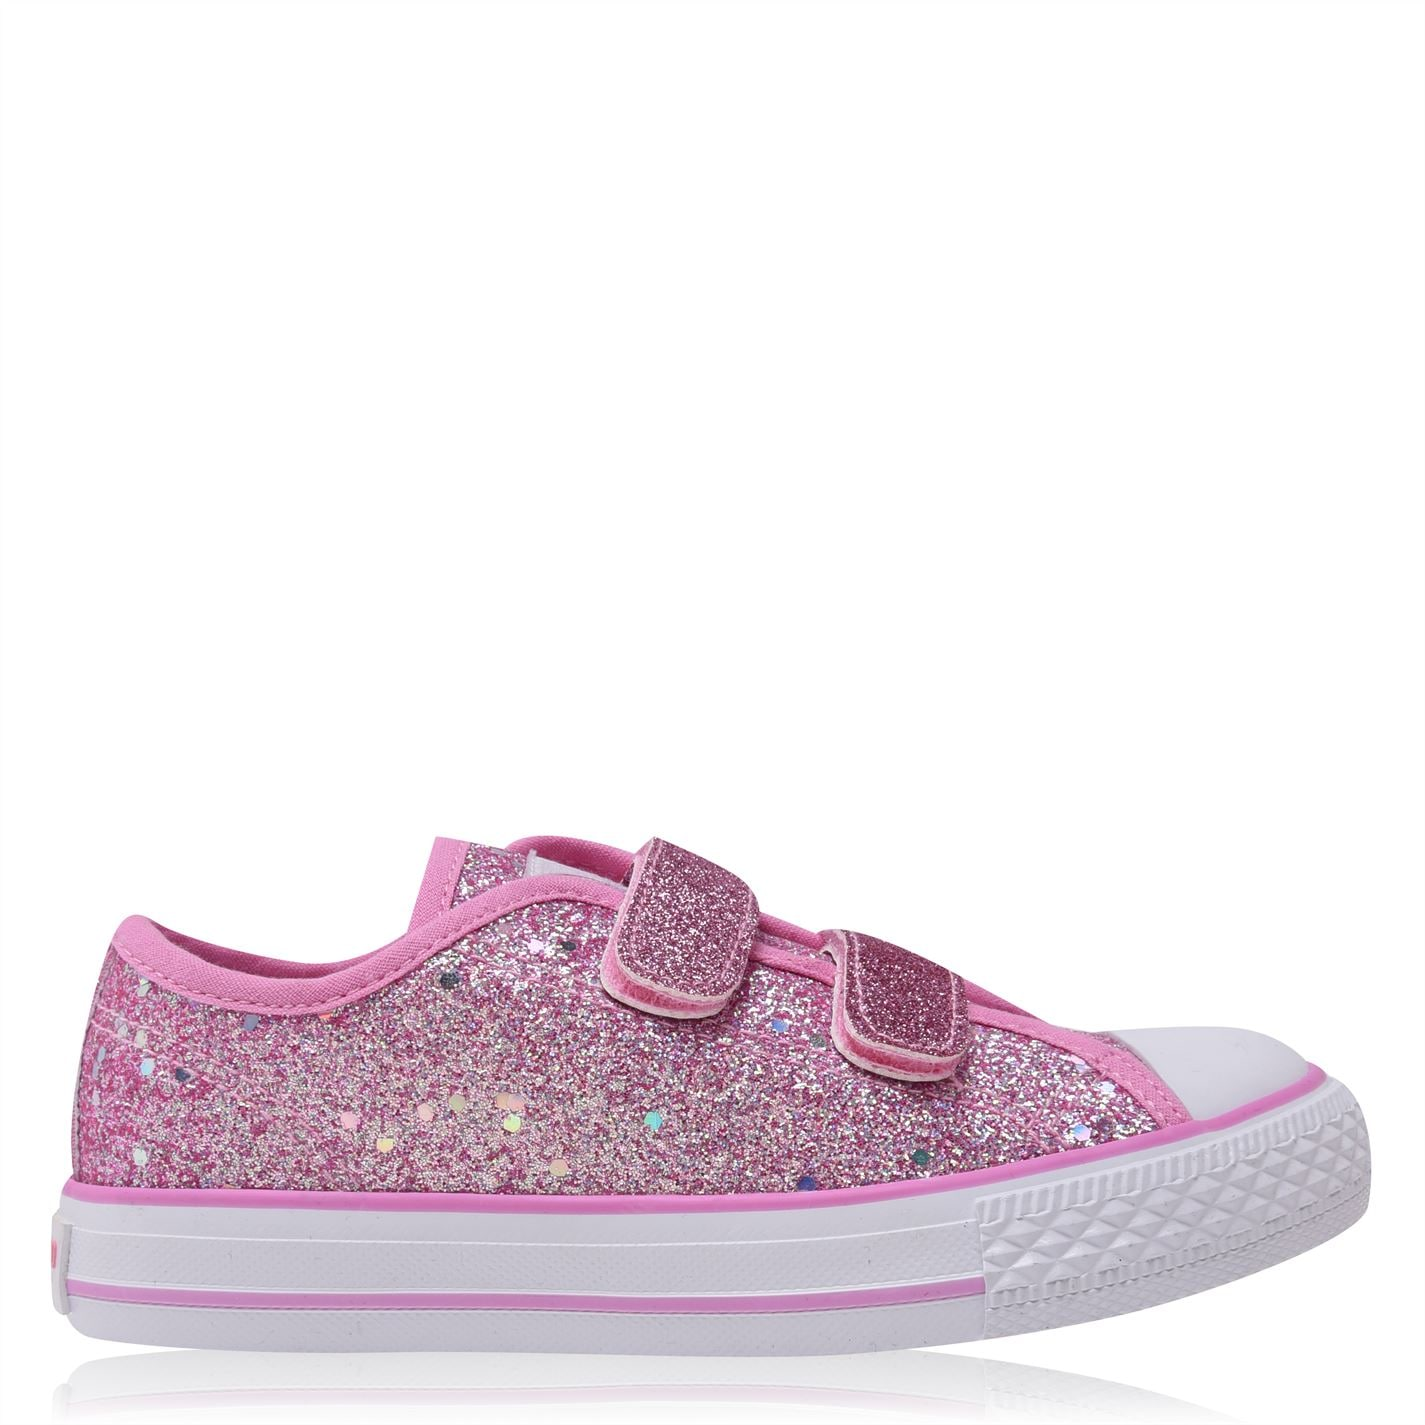 SoulCal Canvas Hook and Loop Tape Shoes Pink Glitt